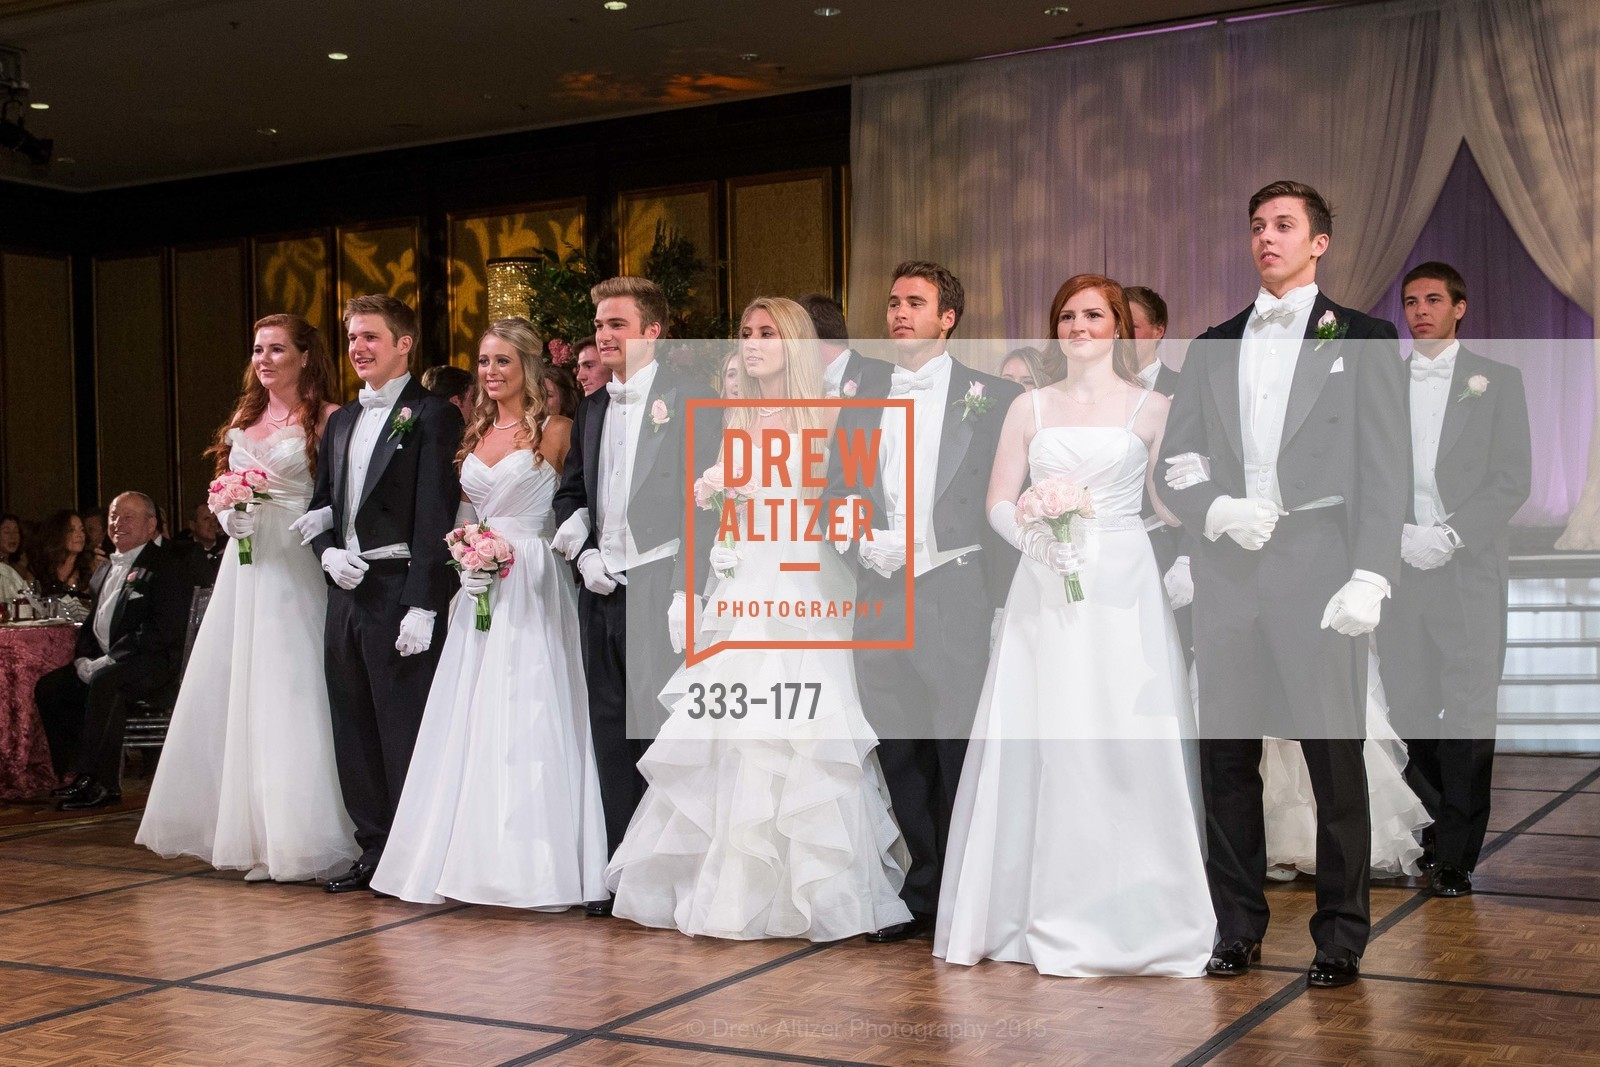 Kendall Marion Finnegan, Angelo Matteo Sangiacomo, Elizabeth Mason Grayson, Henry Griffith Callender, Mary Grinnell, Micahel Grinnell II, Curry Sullivan Fisher, William Behnke Jr., The 2015 San Francisco Debutante Ball, The Westin St. Francis San Francisco Union Square. 335 Powell St, June 20th, 2015,Drew Altizer, Drew Altizer Photography, full-service agency, private events, San Francisco photographer, photographer california